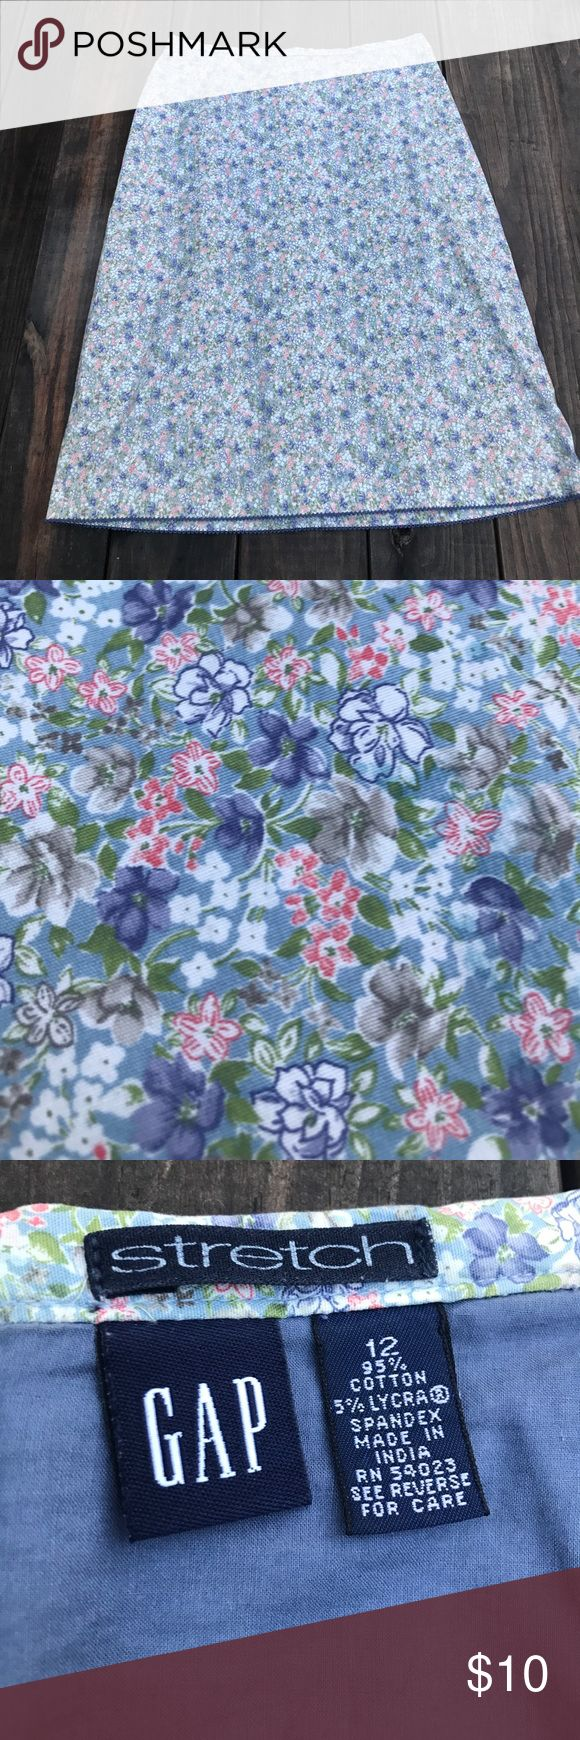 Floral GAP stretch skirt Really cute floral gap stretch skirt size 12, 95% cotton 5% Lycra. Fully lined has zipper in back super cute skirt. I'm 5'7 and it comes below my knees. There's no slit in this skirt. GAP Skirts